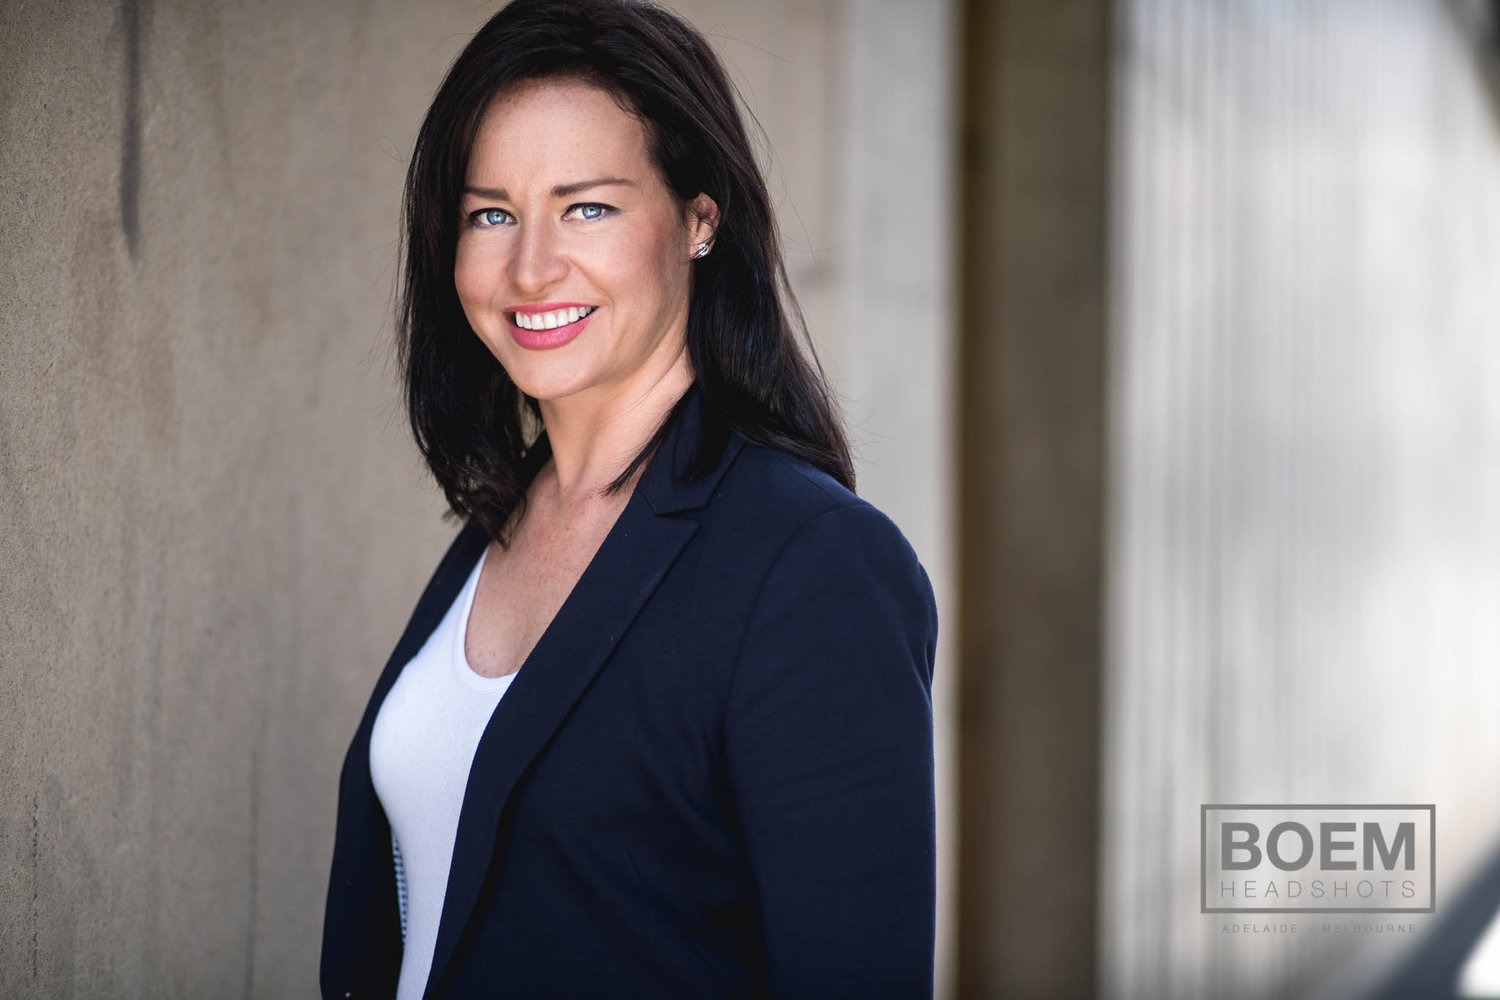 Preview :: Danielle :: Executive Headshots